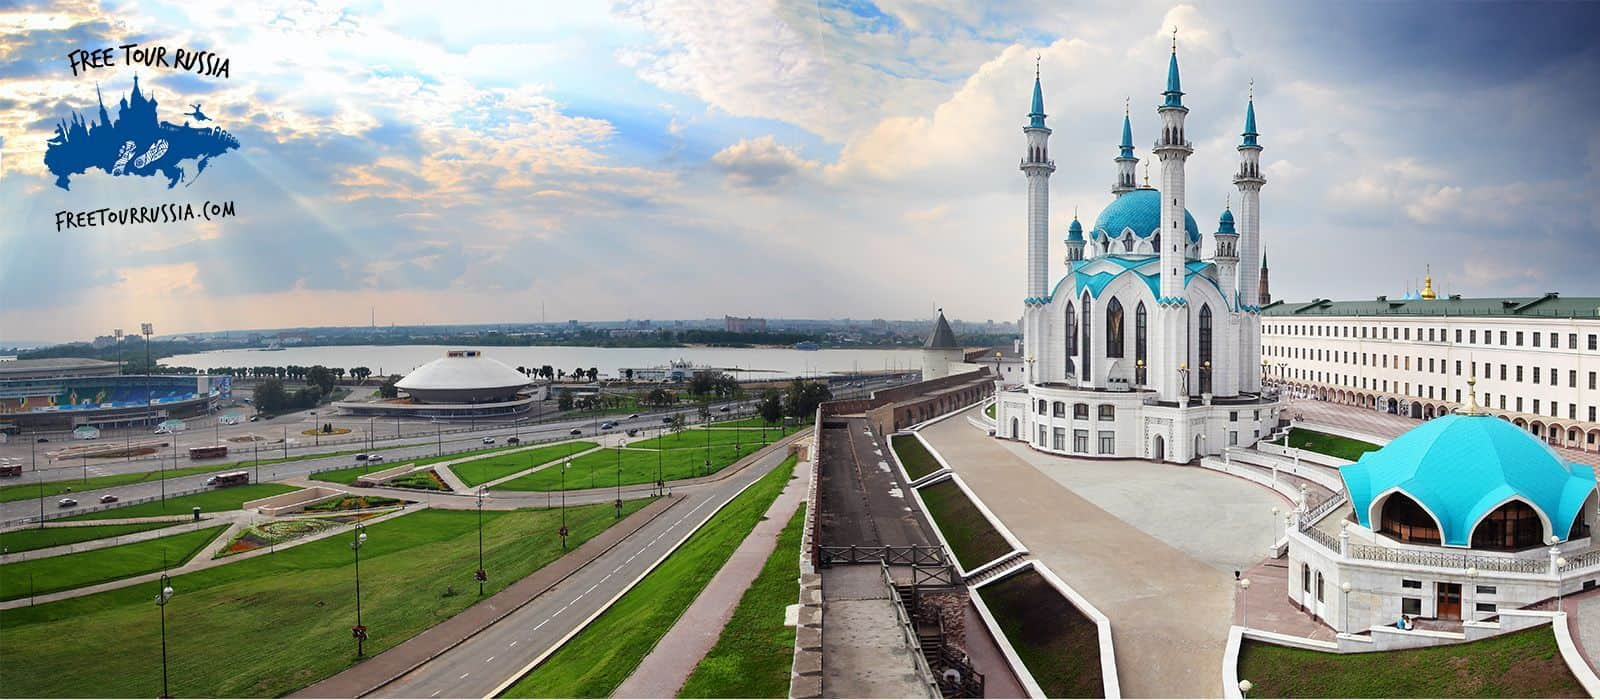 Hourly Tour in Kazan